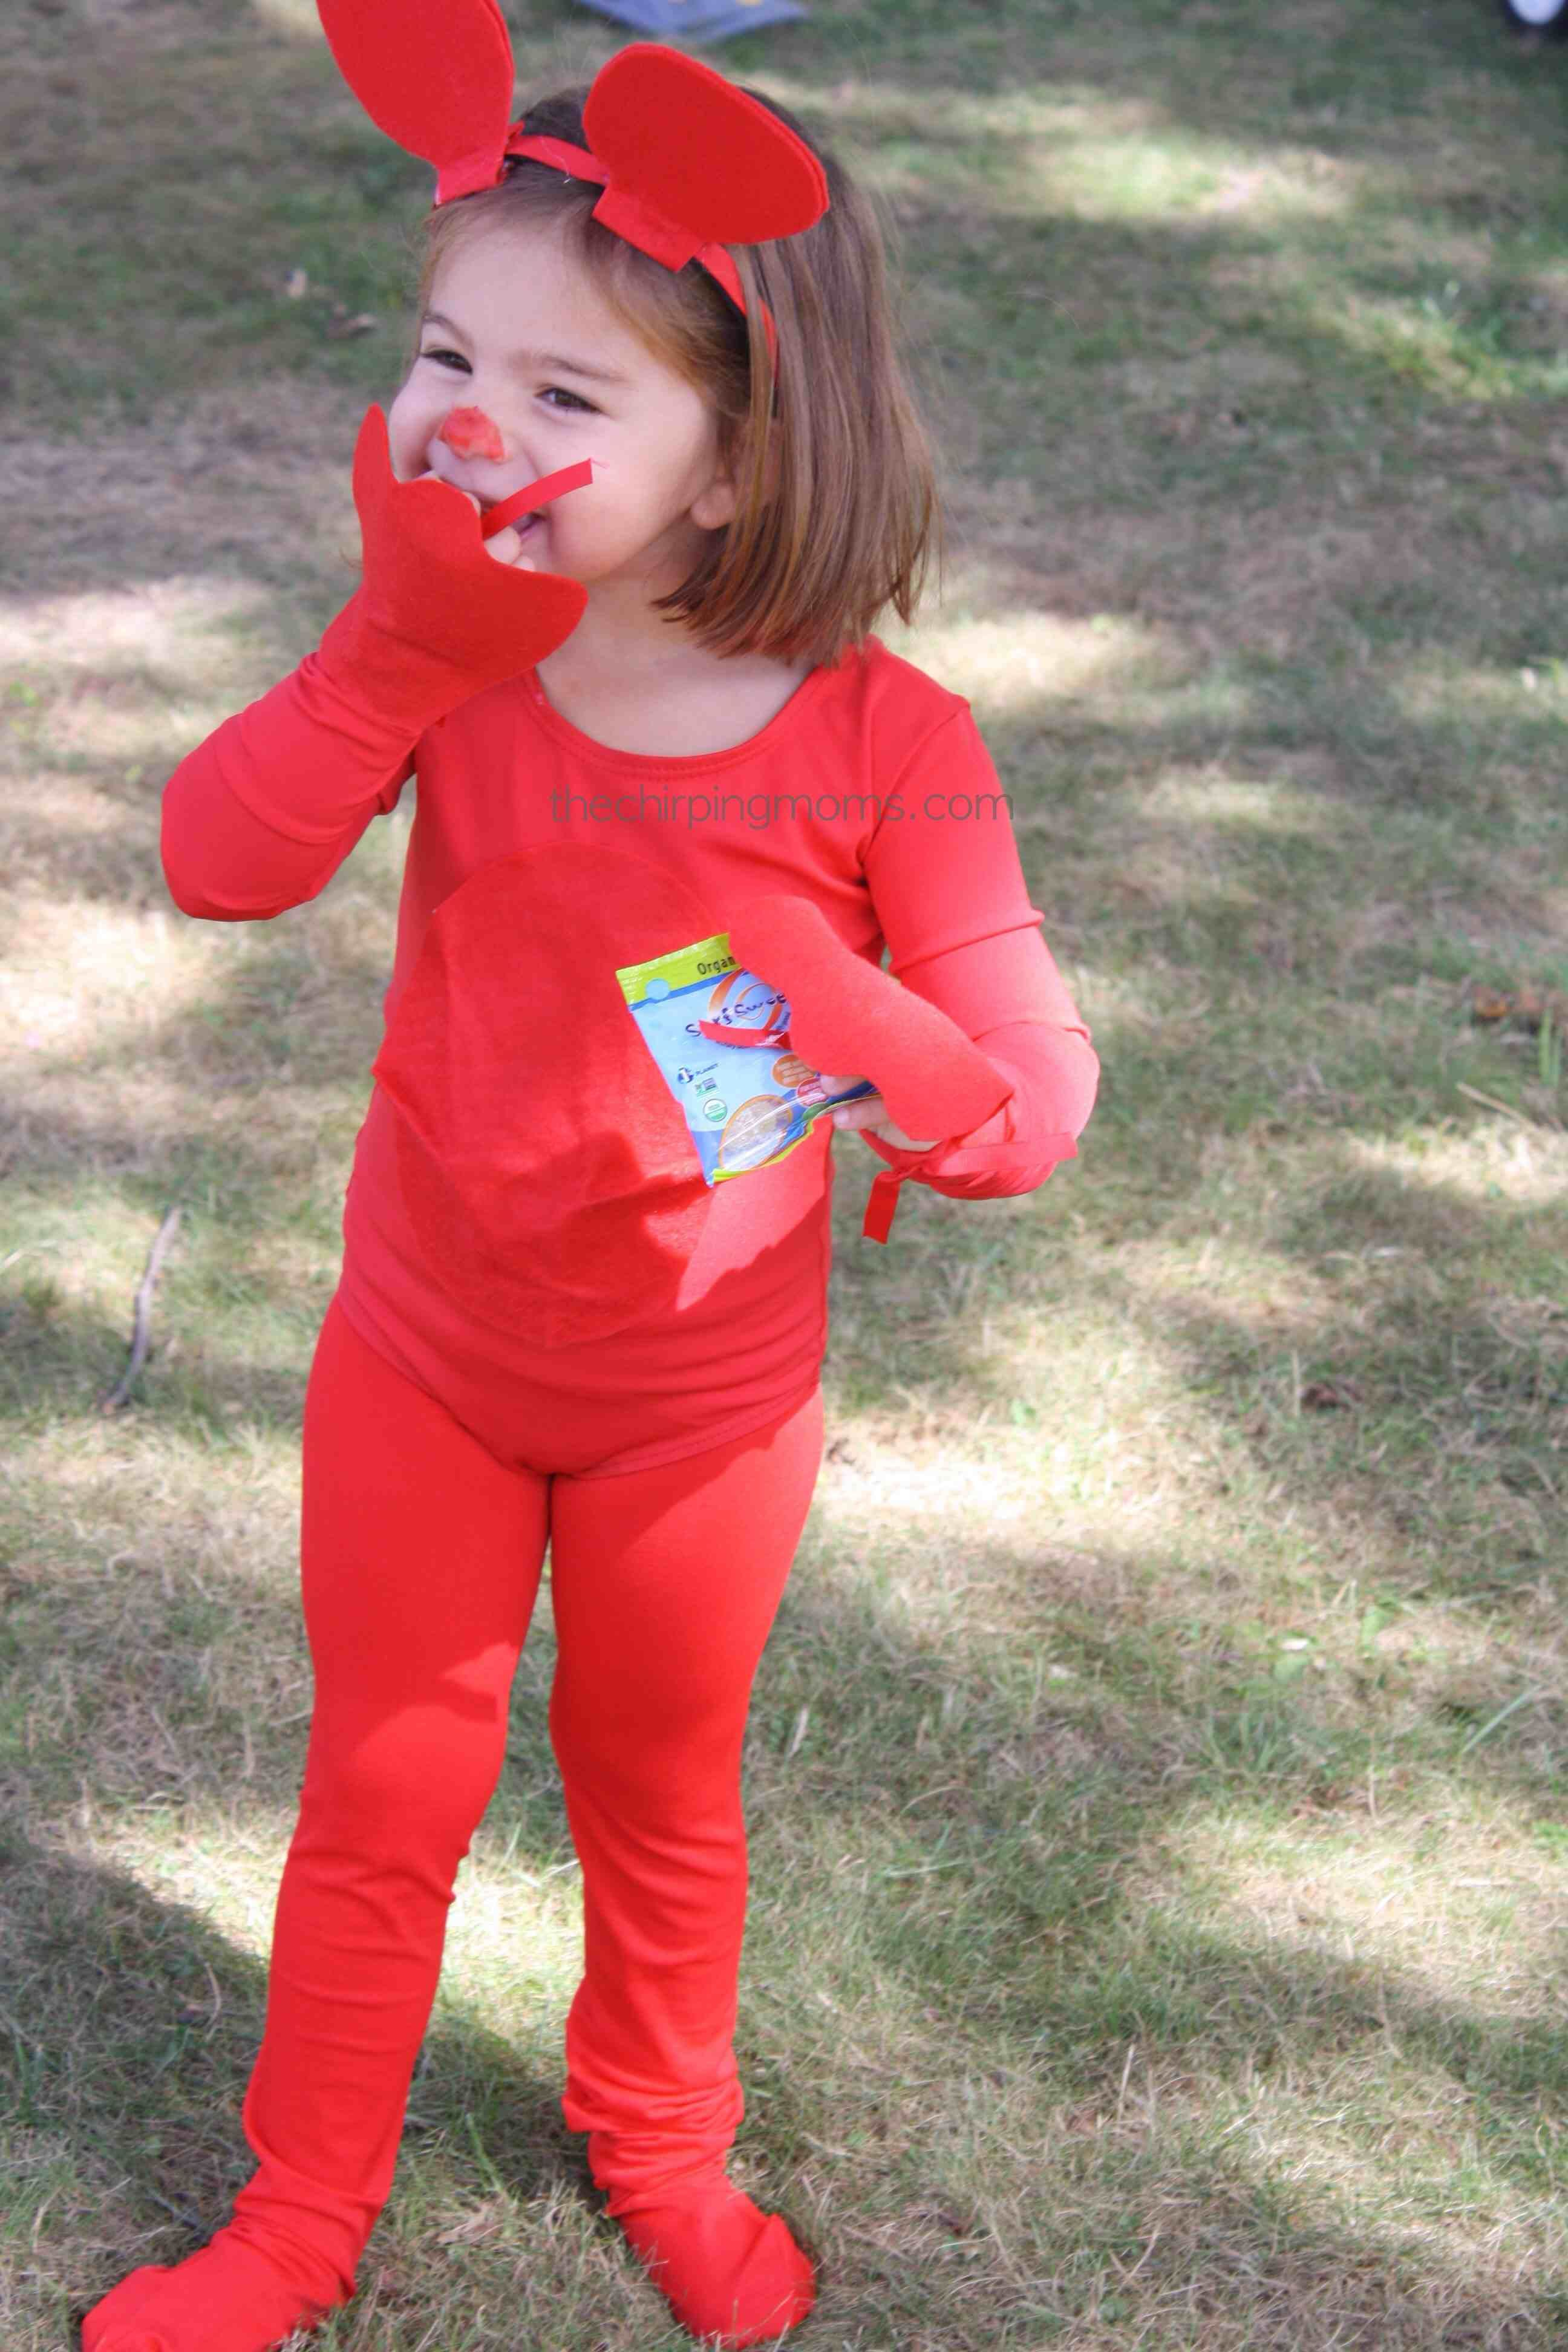 Diy Gummy Bear Costume From Courtney The Chirping Moms Find Everbest Bjorka Handbag Hitam Coordinating Shirt Or Leotard With Pants Tights And Then Accessorize